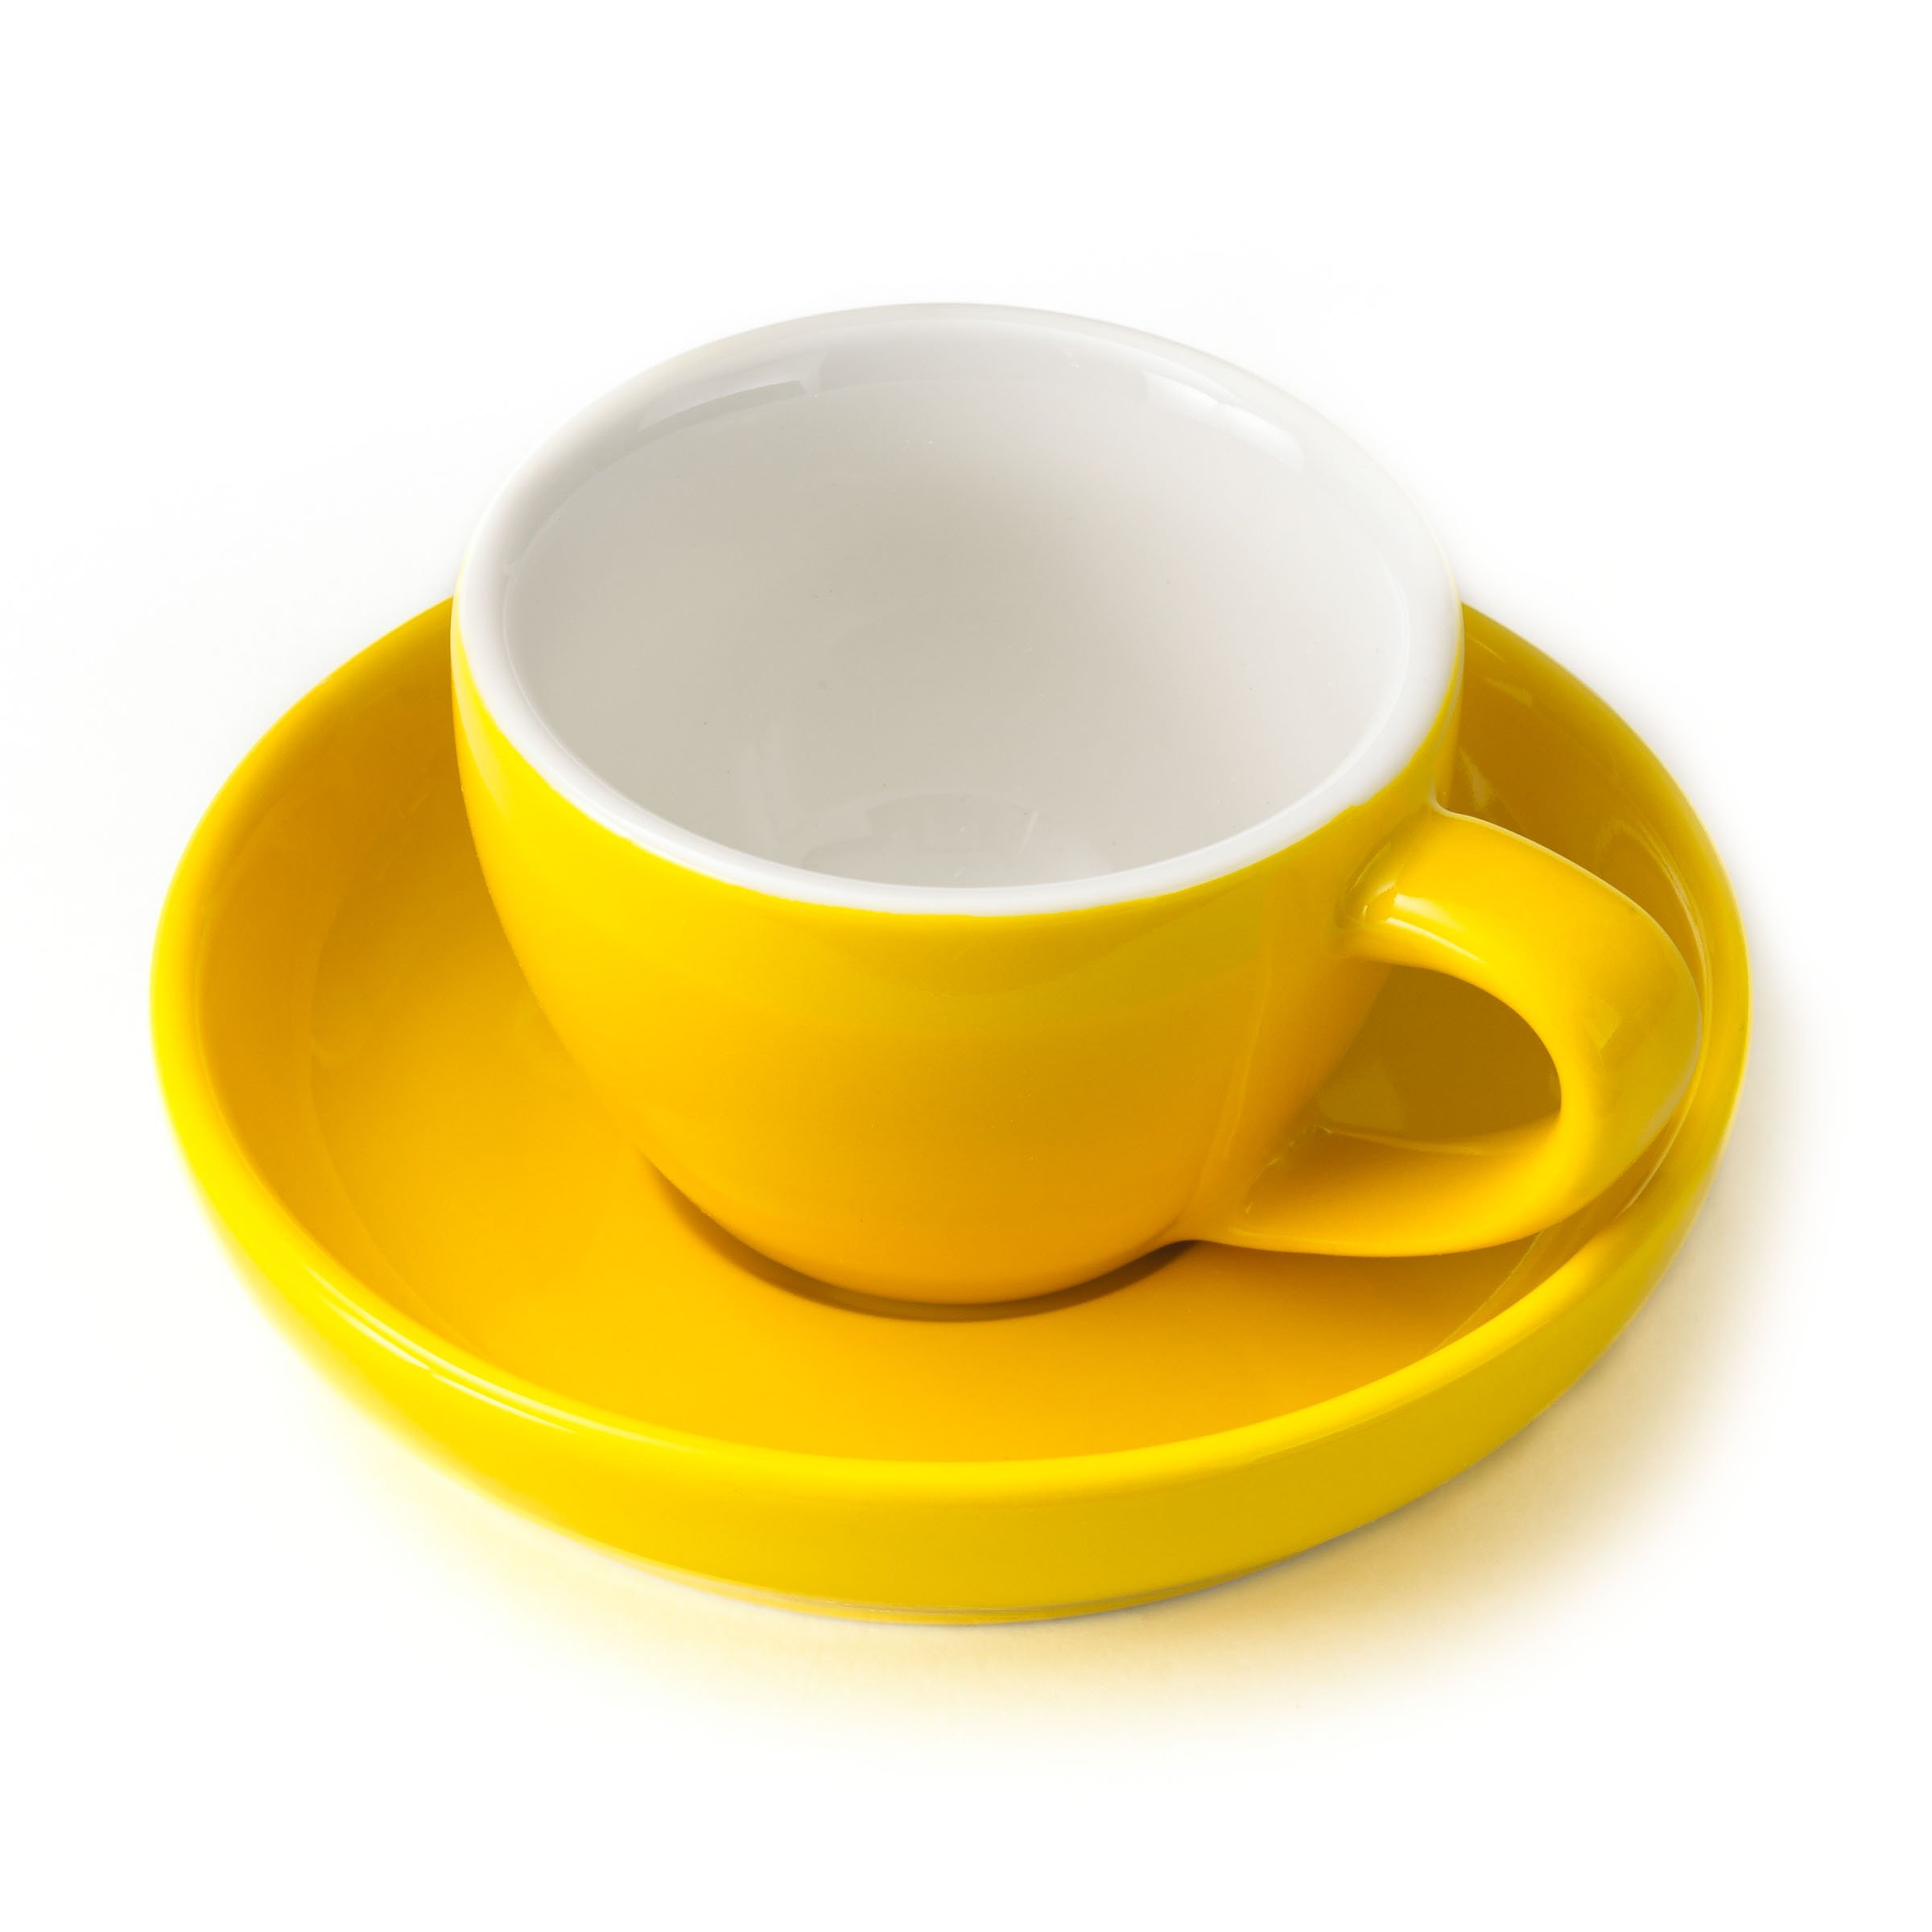 362d9a42f11 Get Quotations · Espresso Cup and Saucer - (1 PC Set) 3-Ounce Demitasse for  Coffee